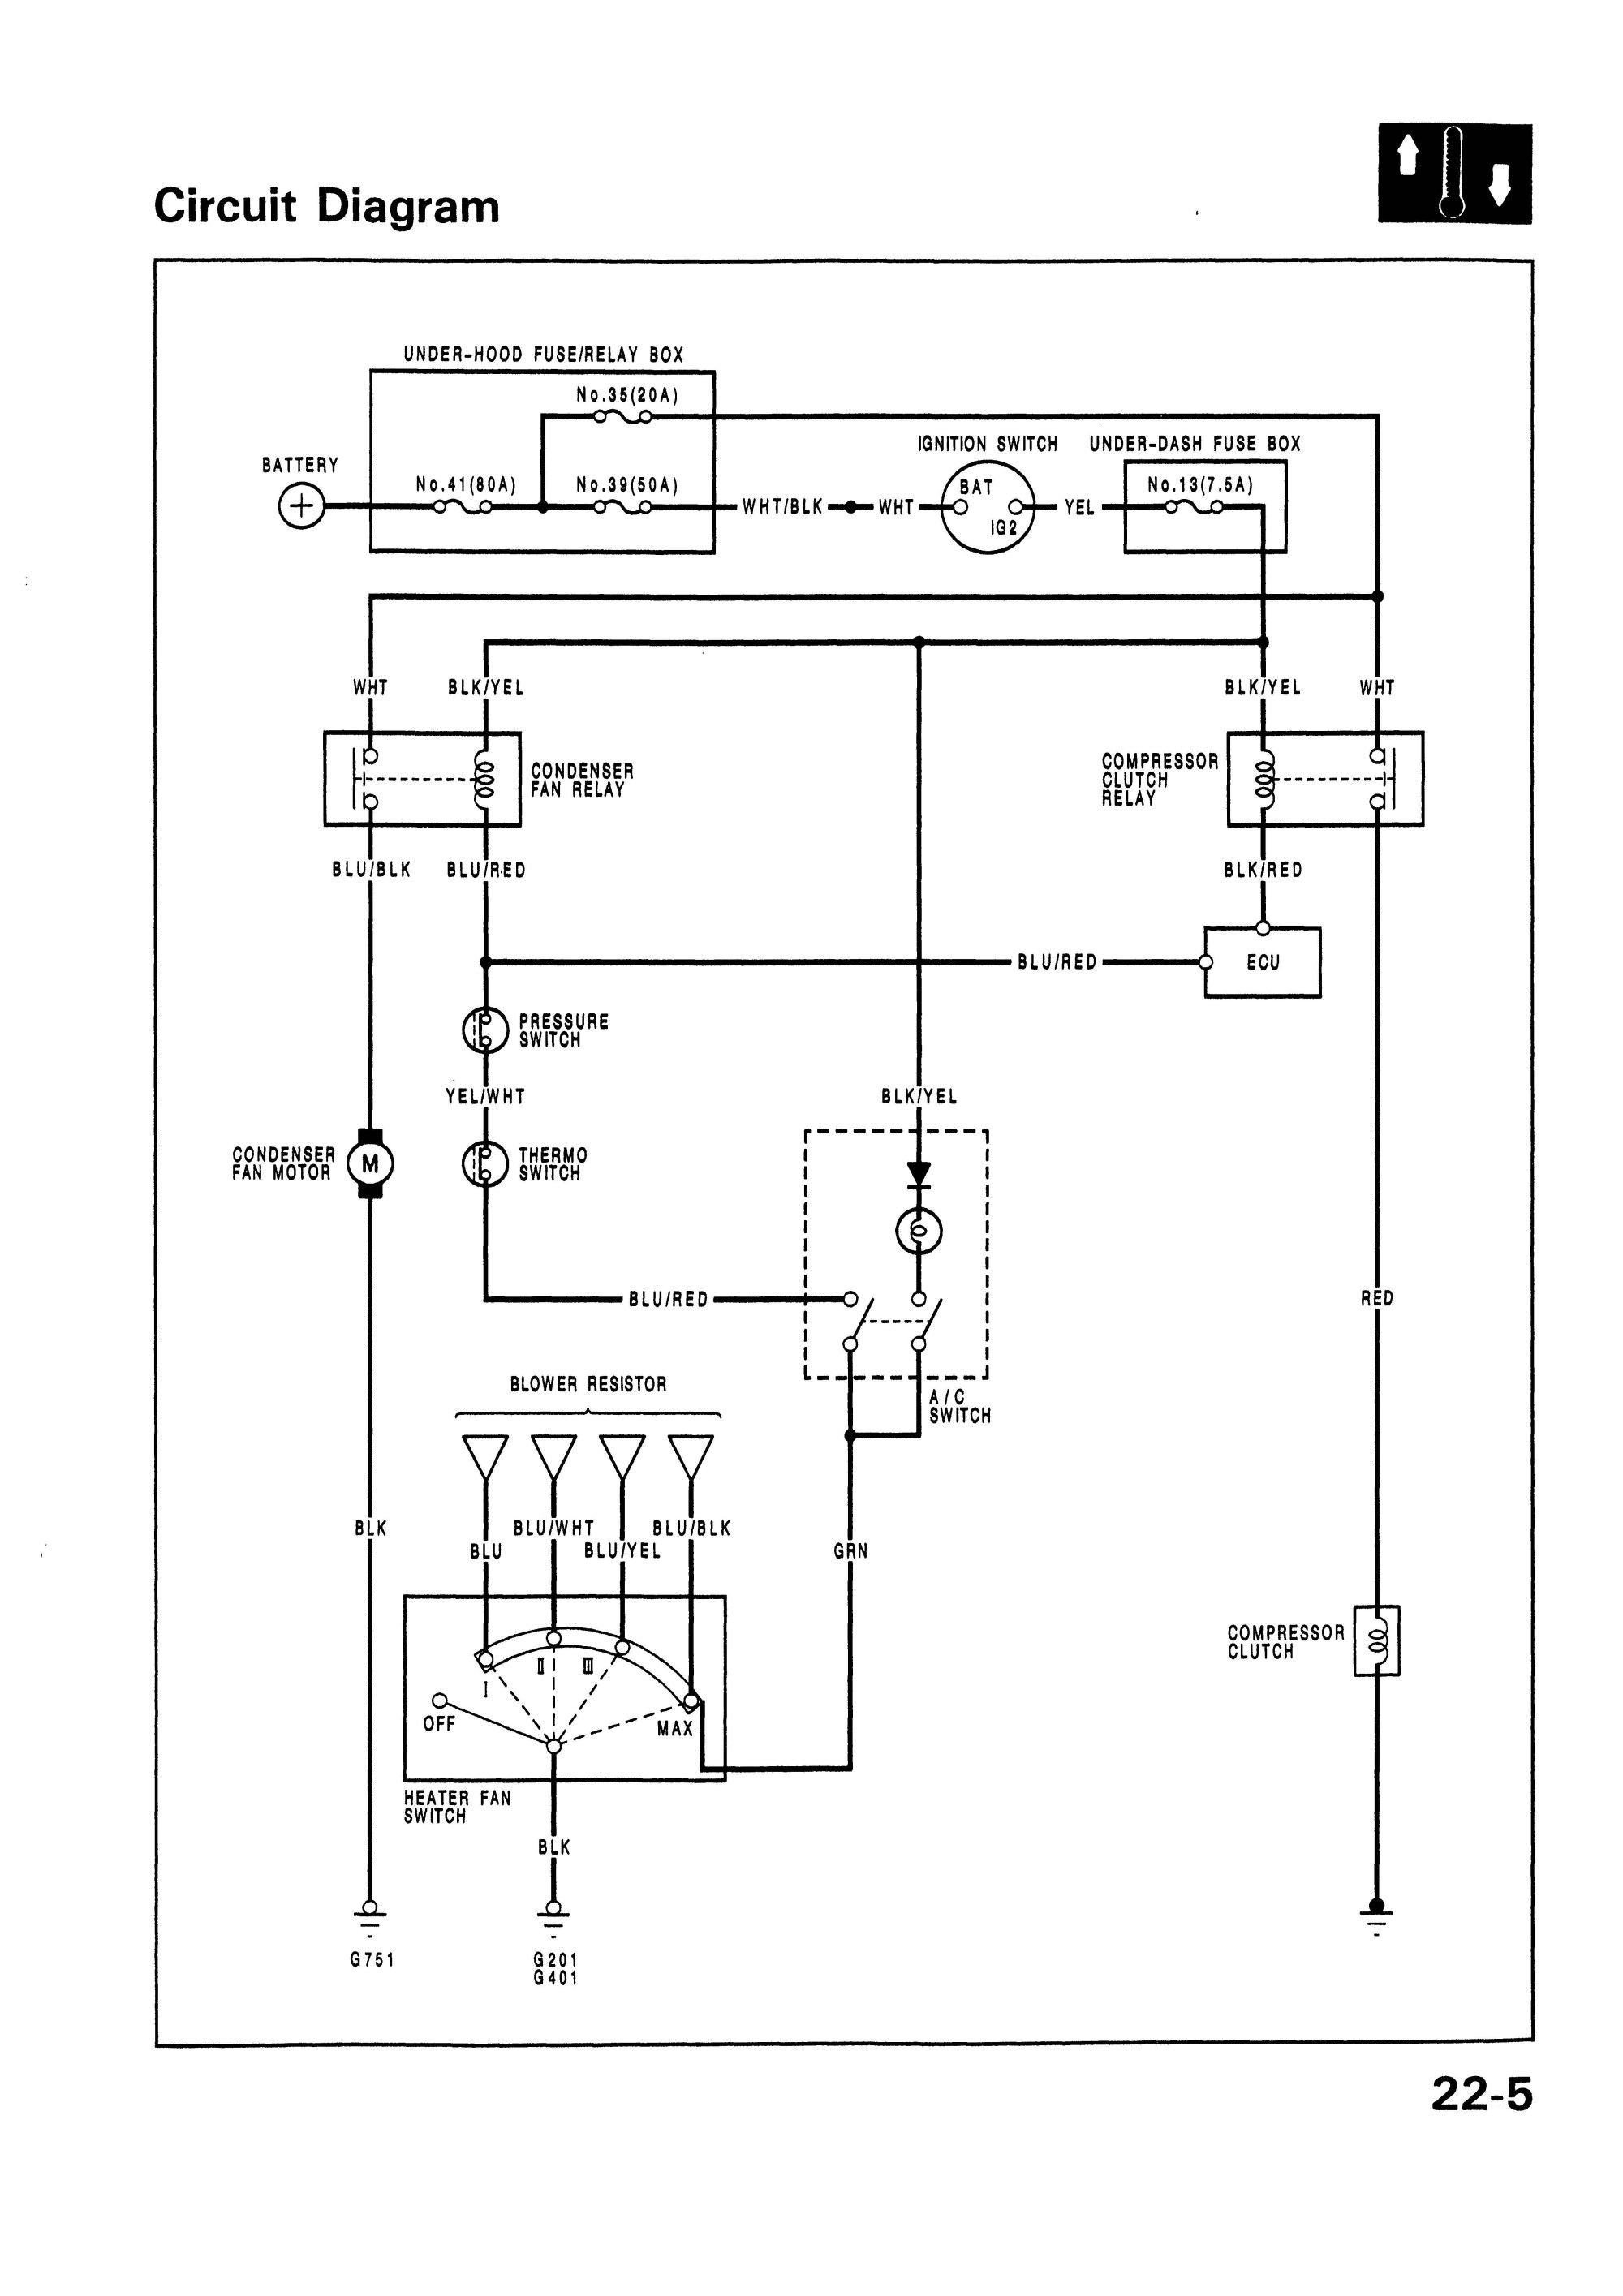 hight resolution of bristol compressor wiring diagram ac bristol wiring diagram wire center u2022 rh moffmall co outside